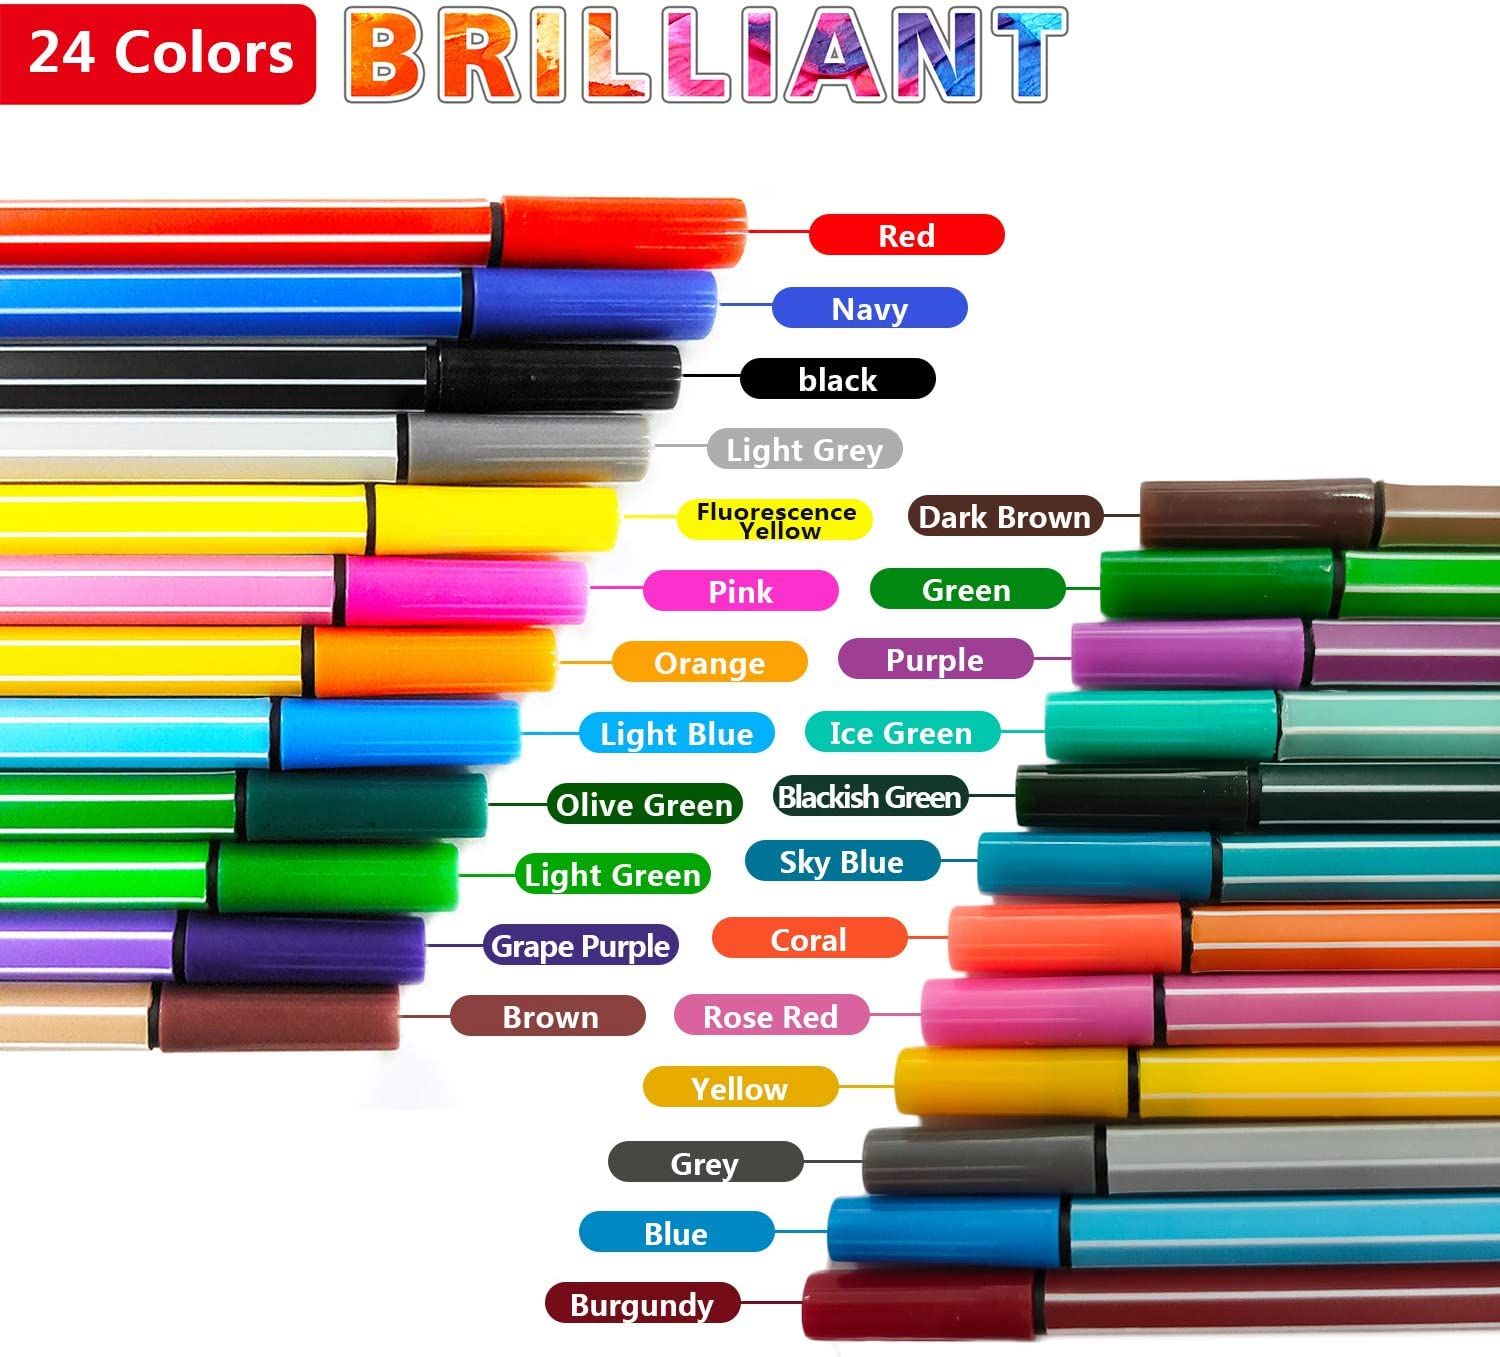 Fine-Liner Pens 10 Colors Journal Planner Pens for Drawing and Writing Fine Point Markers